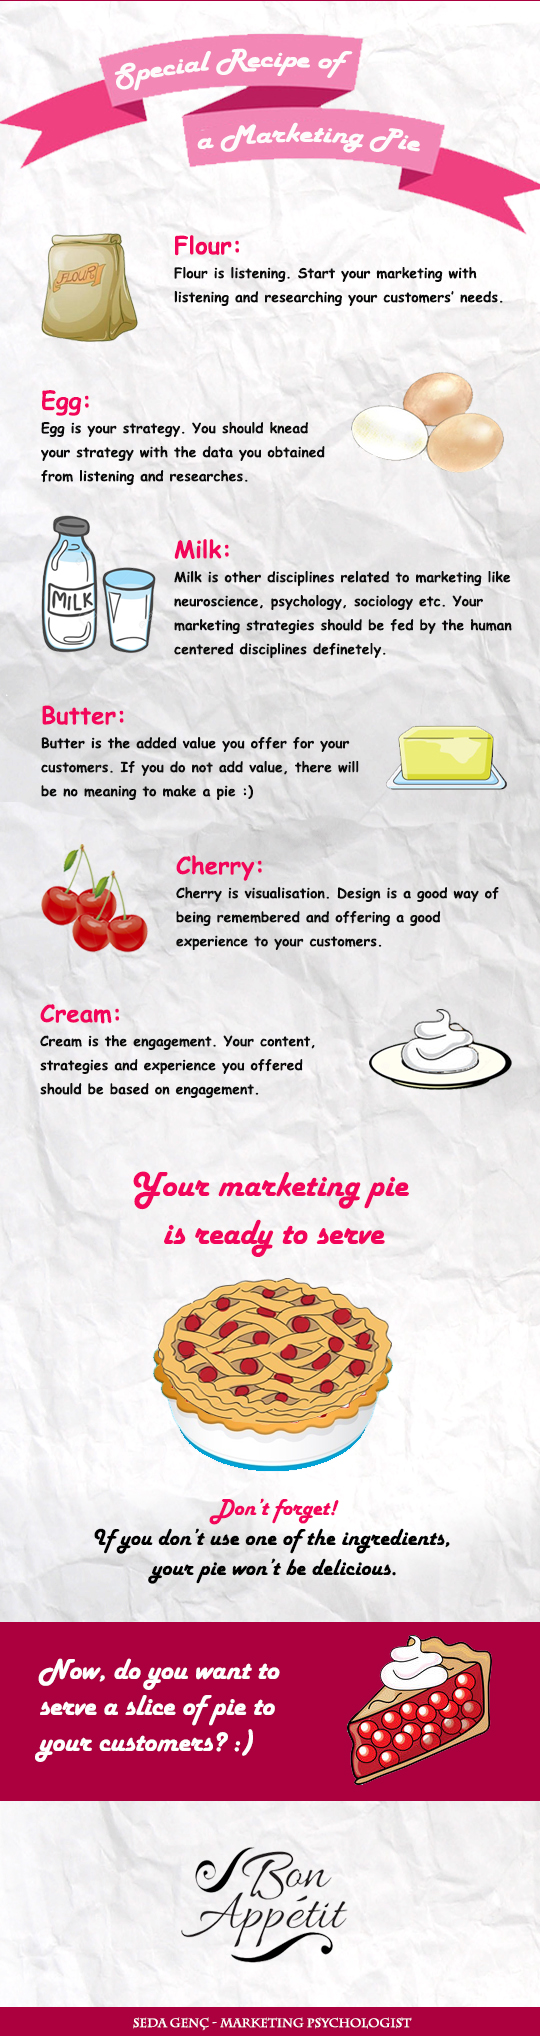 marketing pie